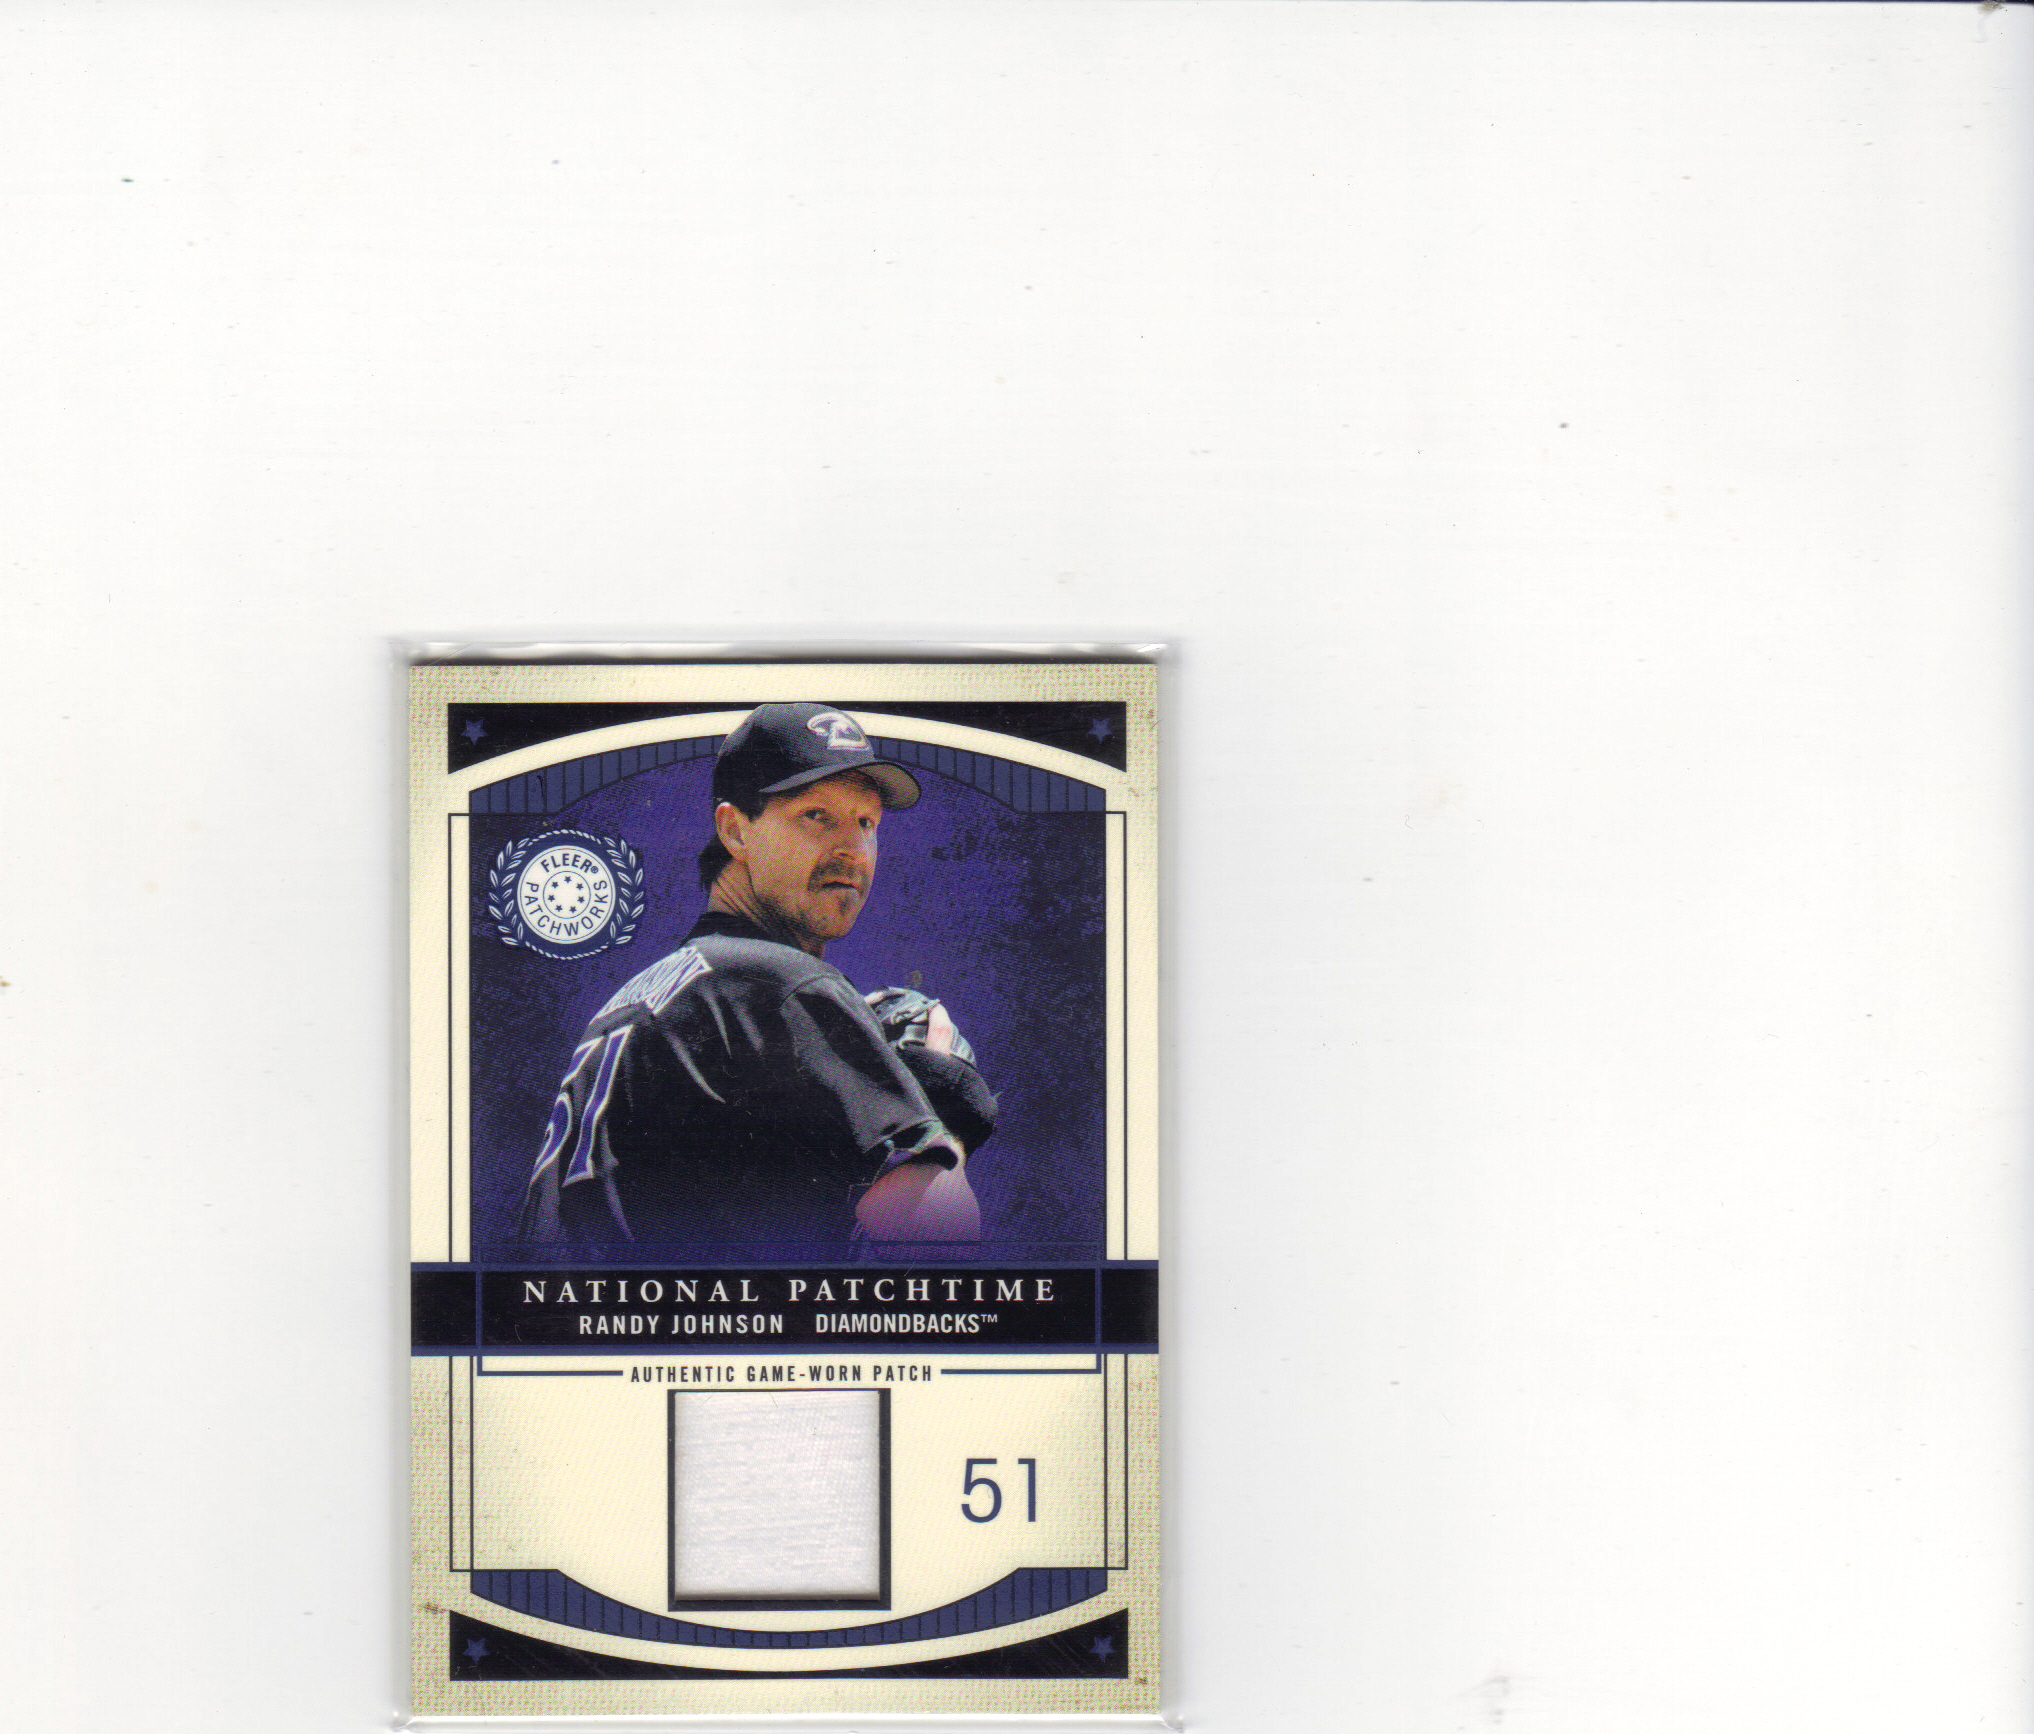 2003 Fleer Patchworks National Patchtime 300 #RJ2 Randy Johnson